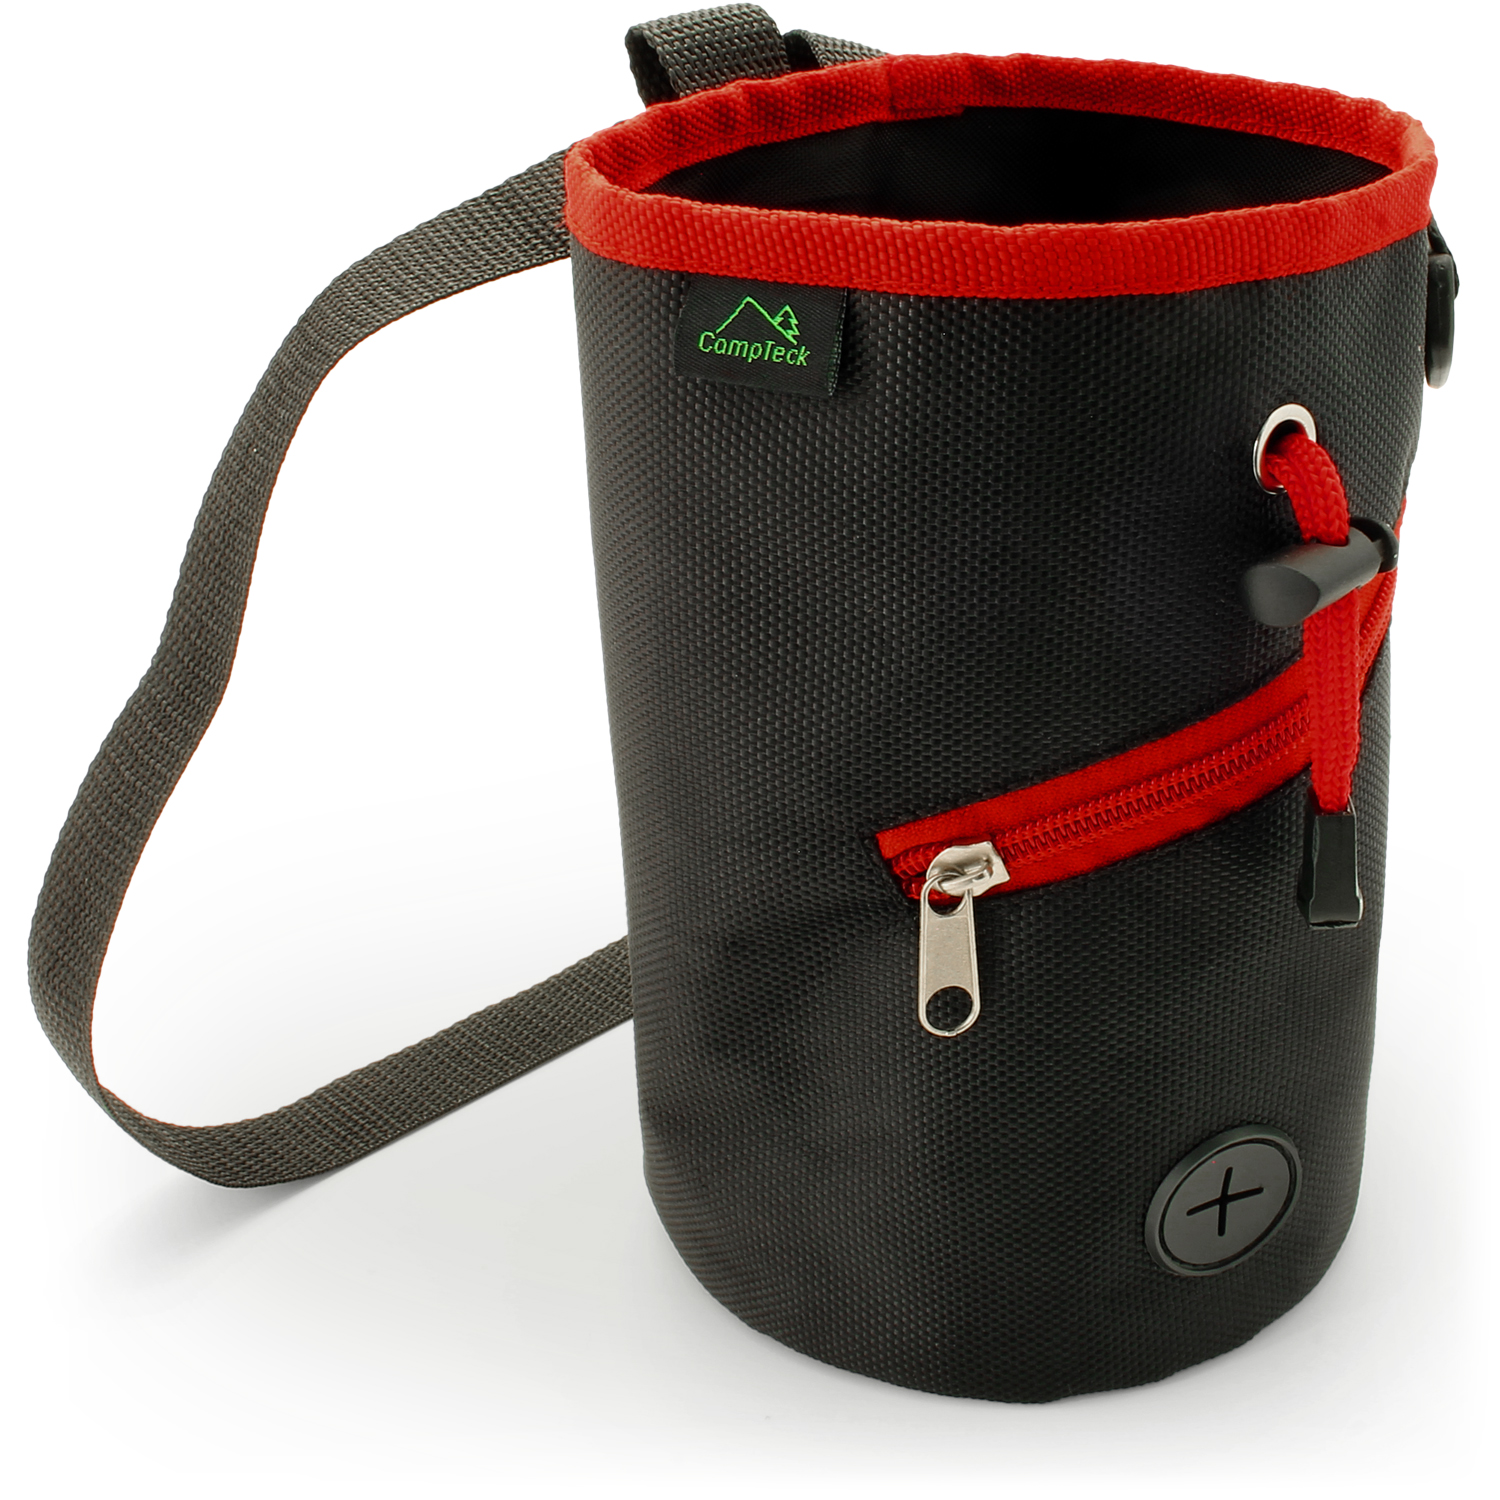 CampTeck Drawstring Chalk Bag for Rock Climbing, Bouldering, Gymnastics, Weightlifting & much more ? Black